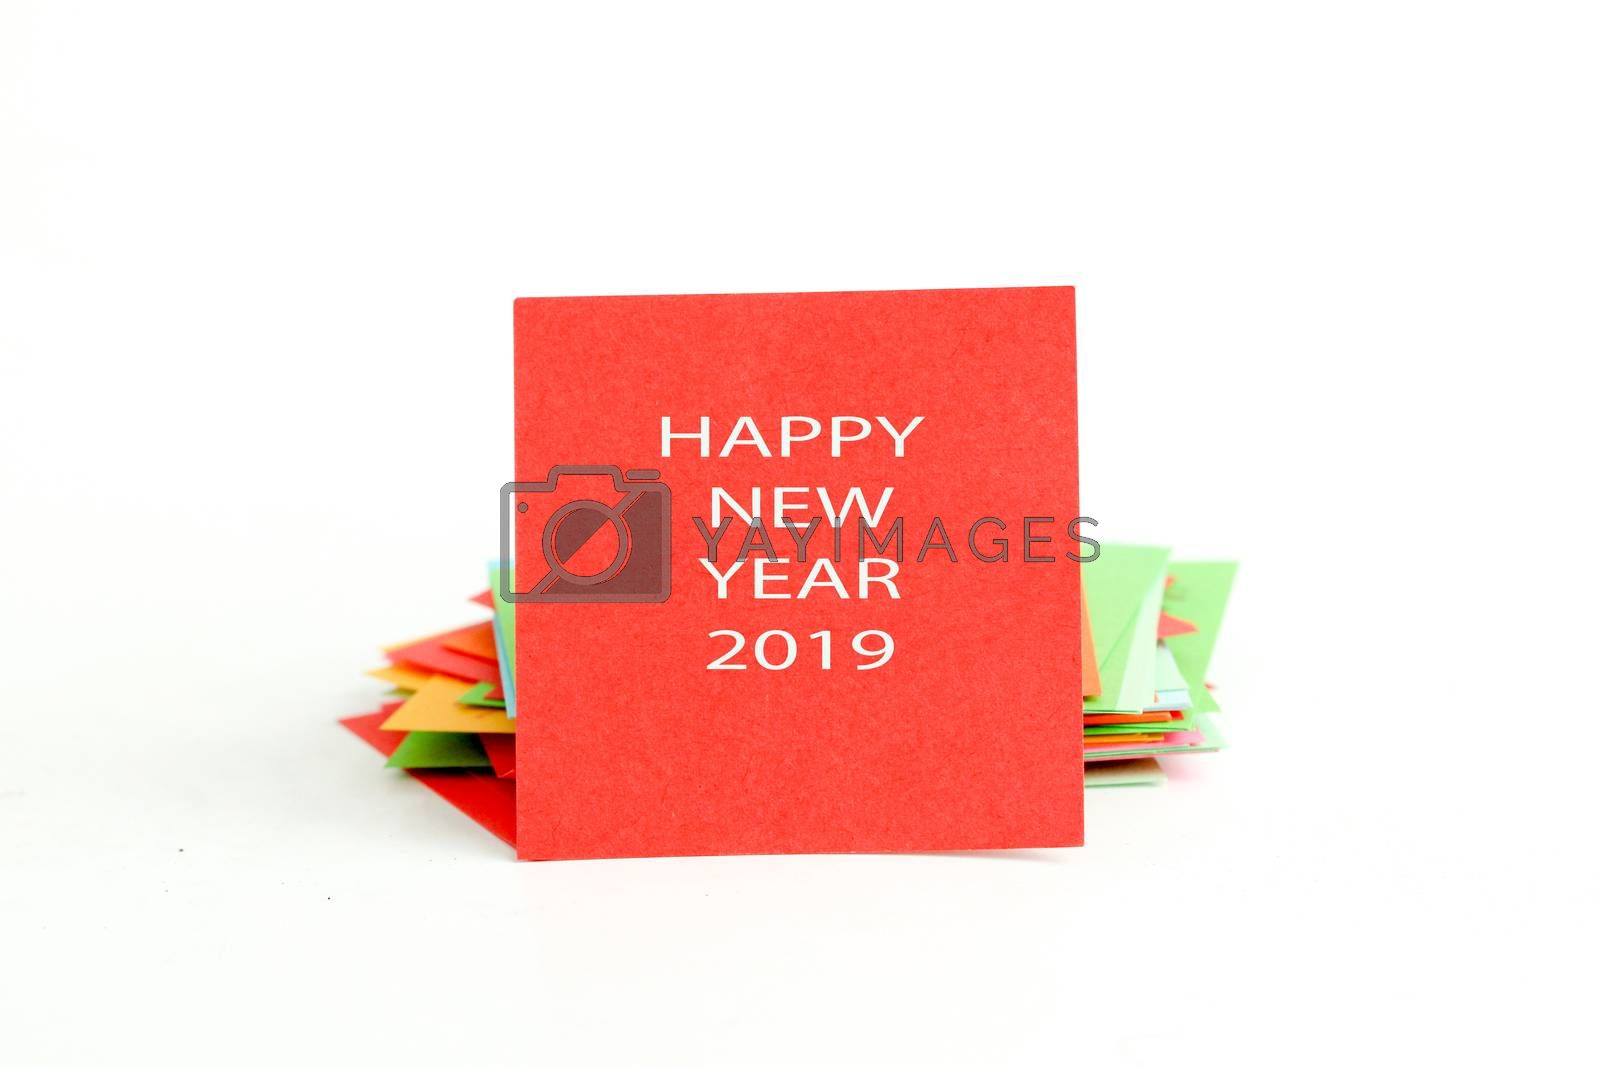 picture of a red note paper with text happy new year 2019